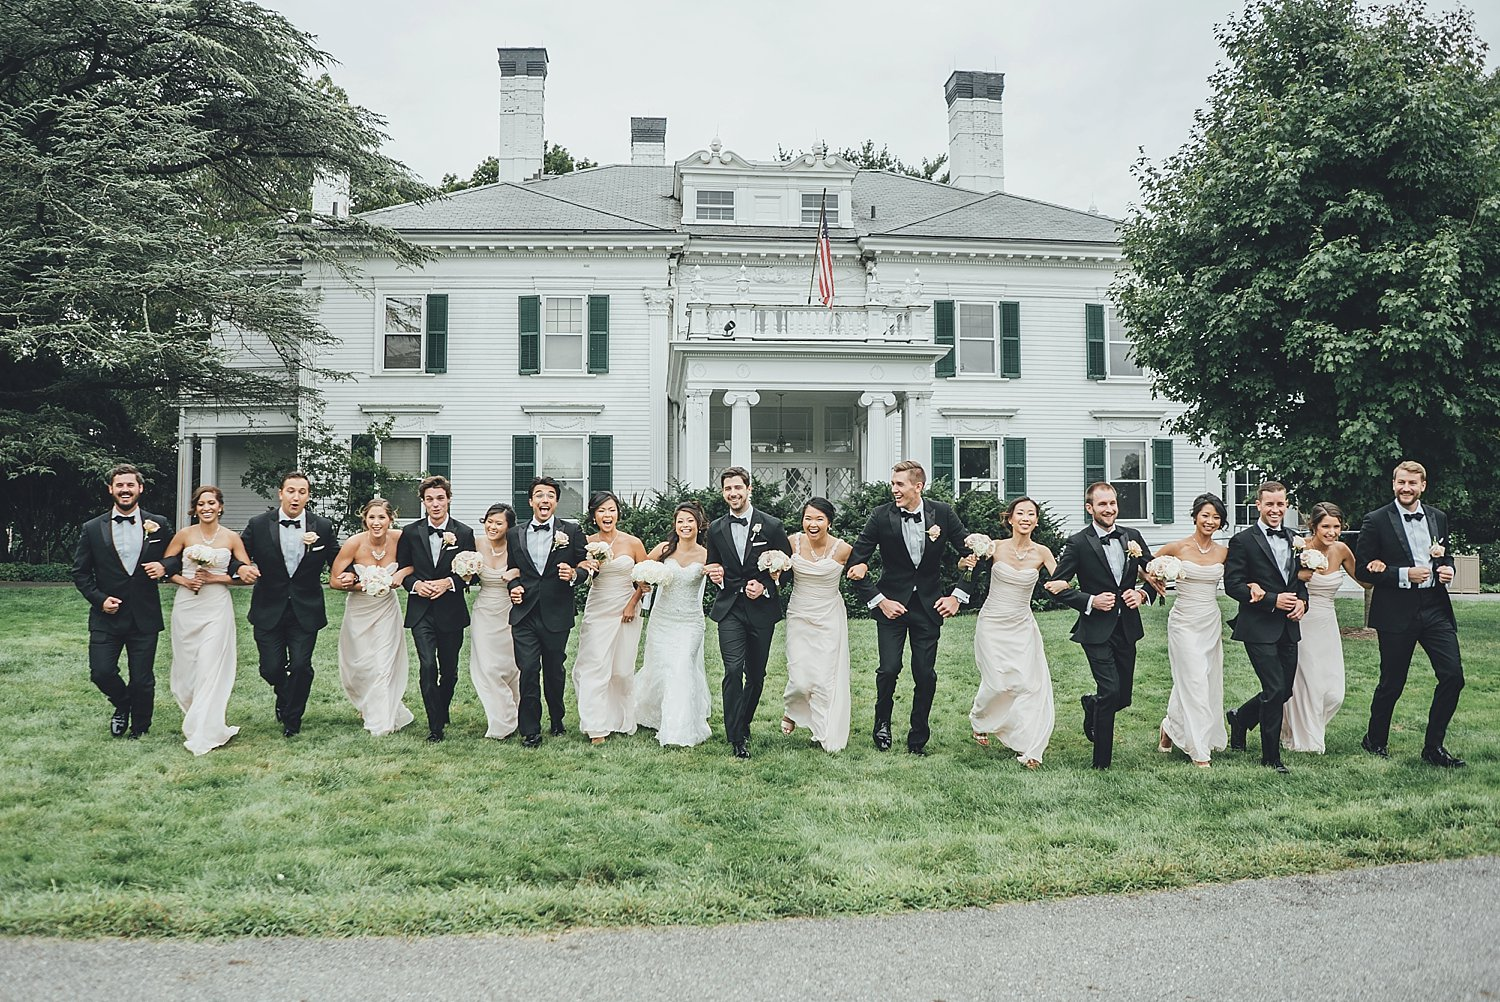 nyc-wedding-photography-nj-tri-state-cinematography-intothestory-by-moo-jae_0245.jpg